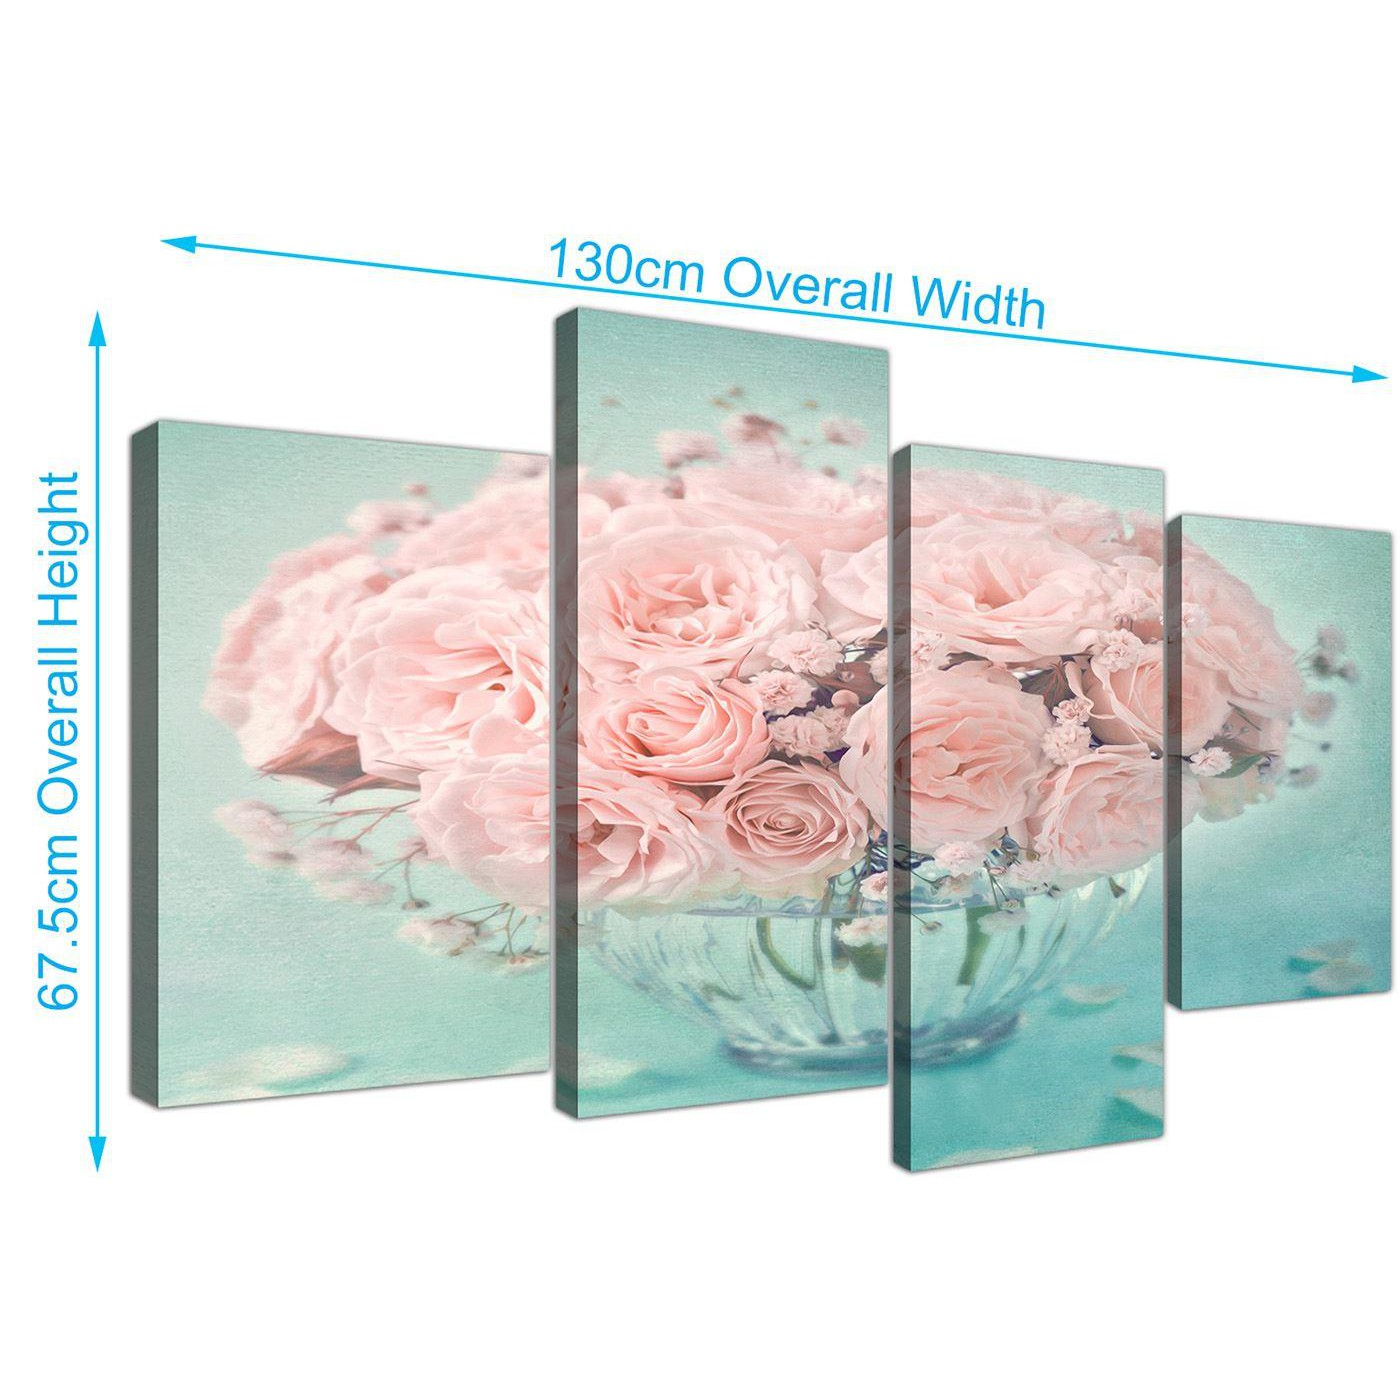 SET OF 2 x SHABBY CHIC PINK FLORAL PHOTO FRAME HOOKS NEW